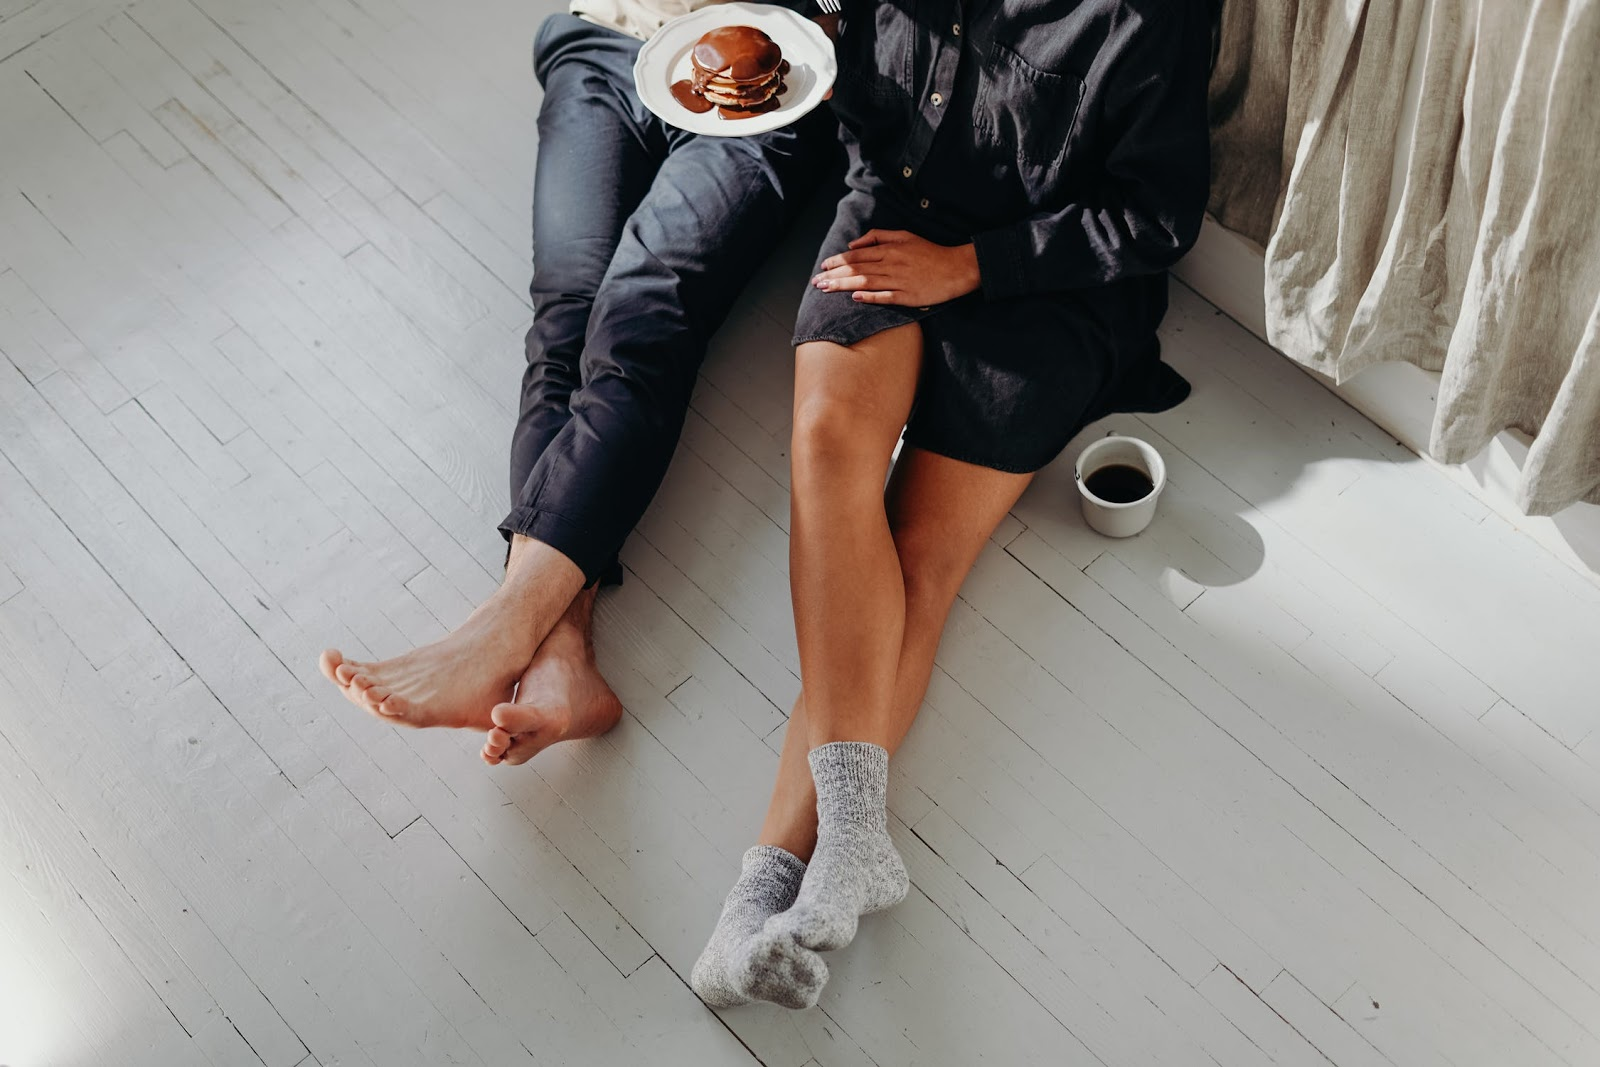 Two people sitting on the floor sharing a plate of pancakes.